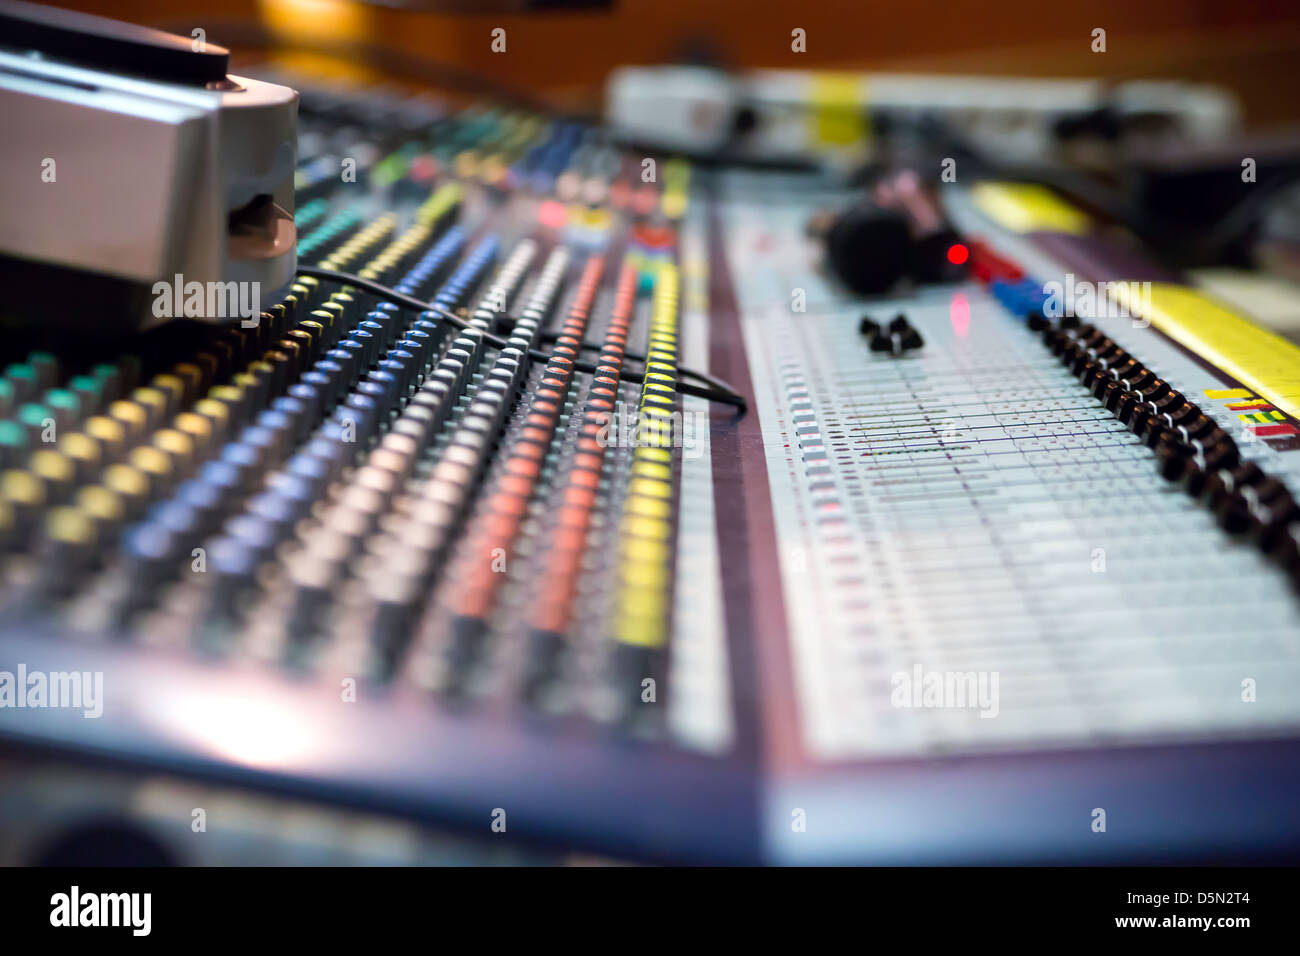 Zoomed view on sound mixer with regulation buttons - Stock Image